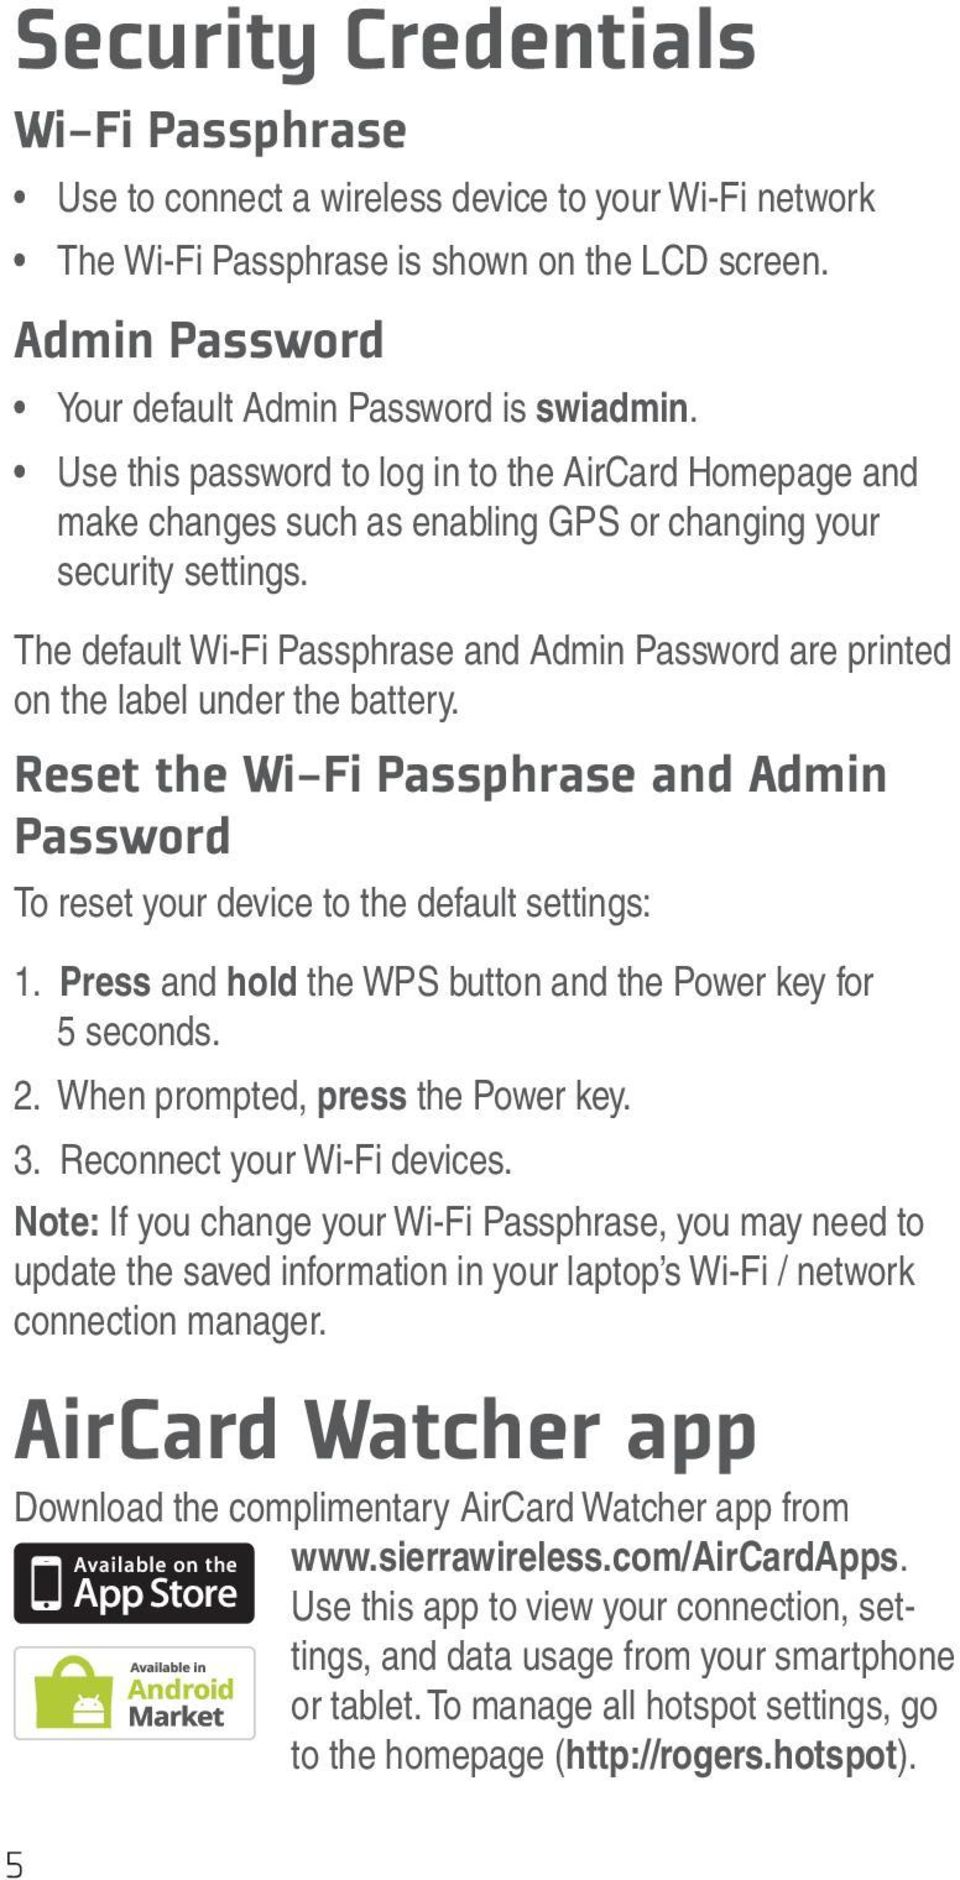 The default Wi-Fi Passphrase and Admin Password are printed on the label under the battery. Reset the Wi-Fi Passphrase and Admin Password To reset your device to the default settings: 1.